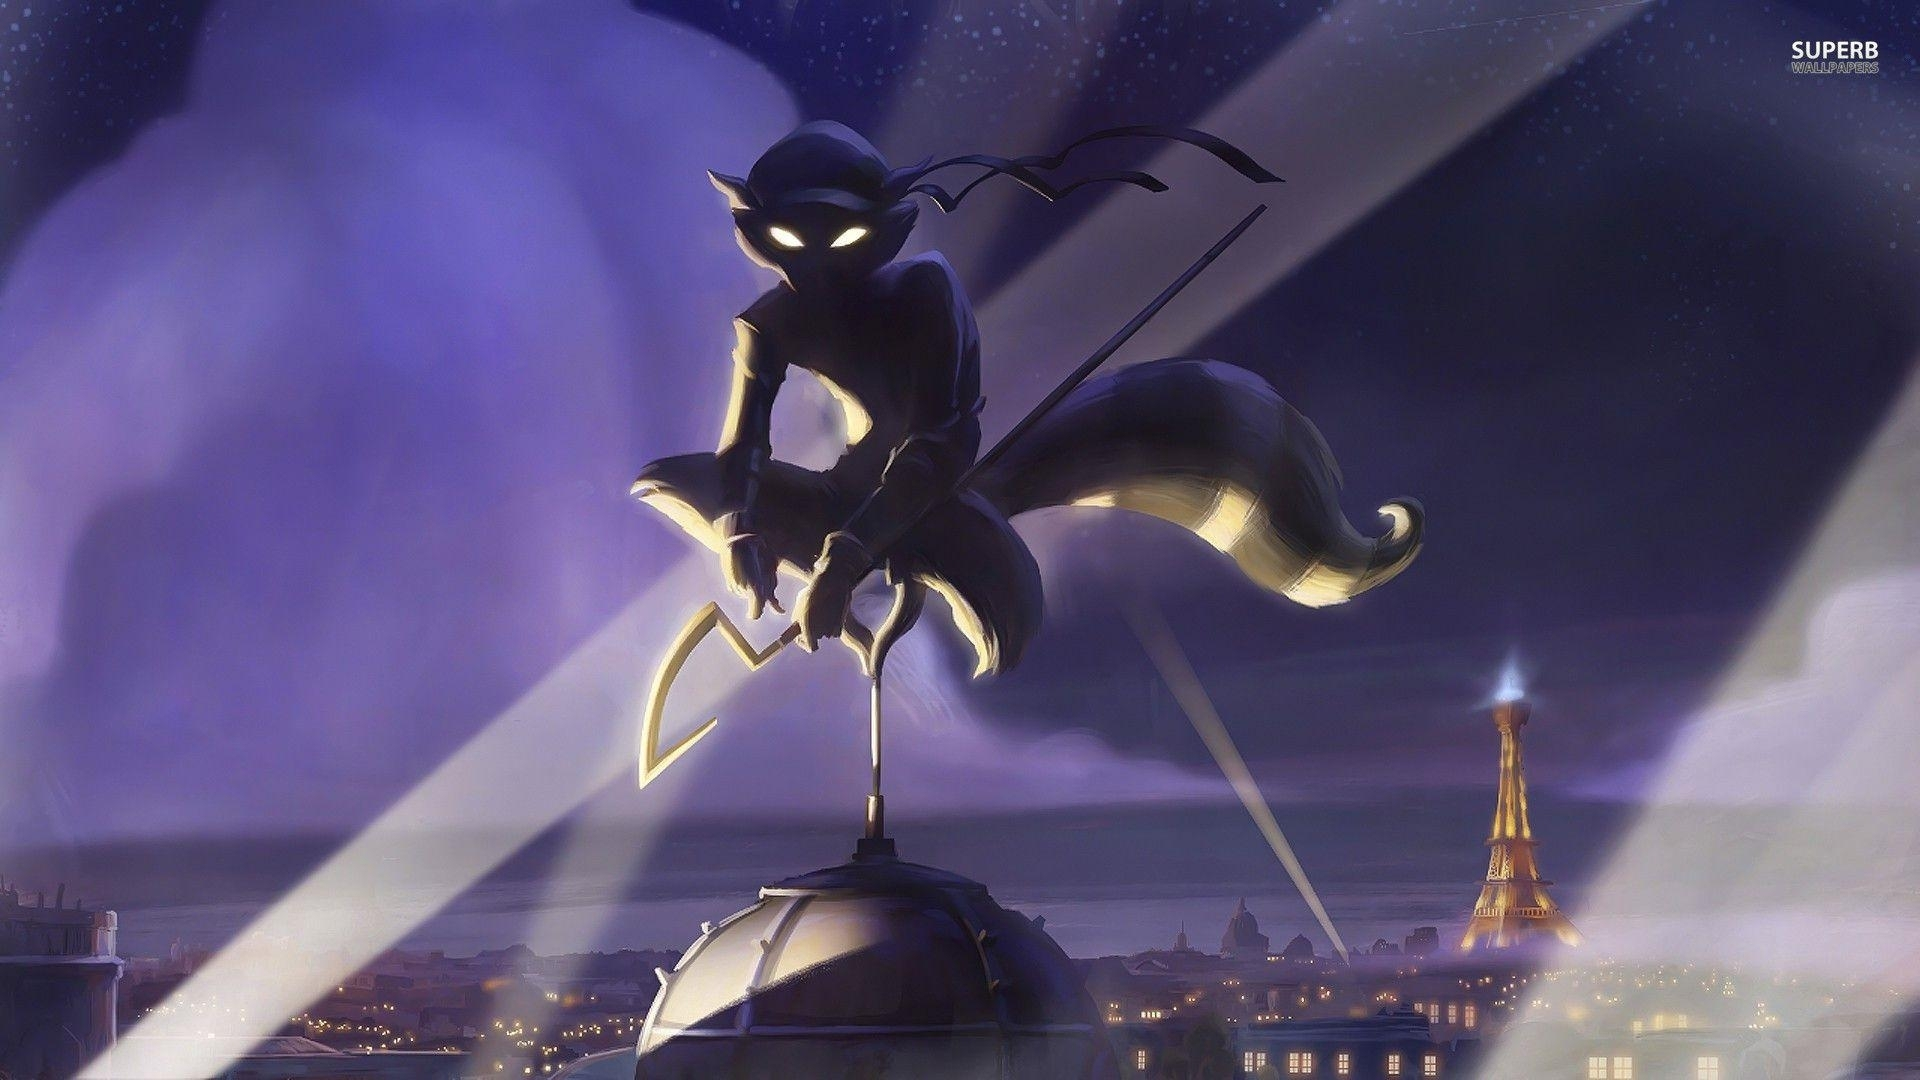 sly cooper wallpapers - wallpaper cave